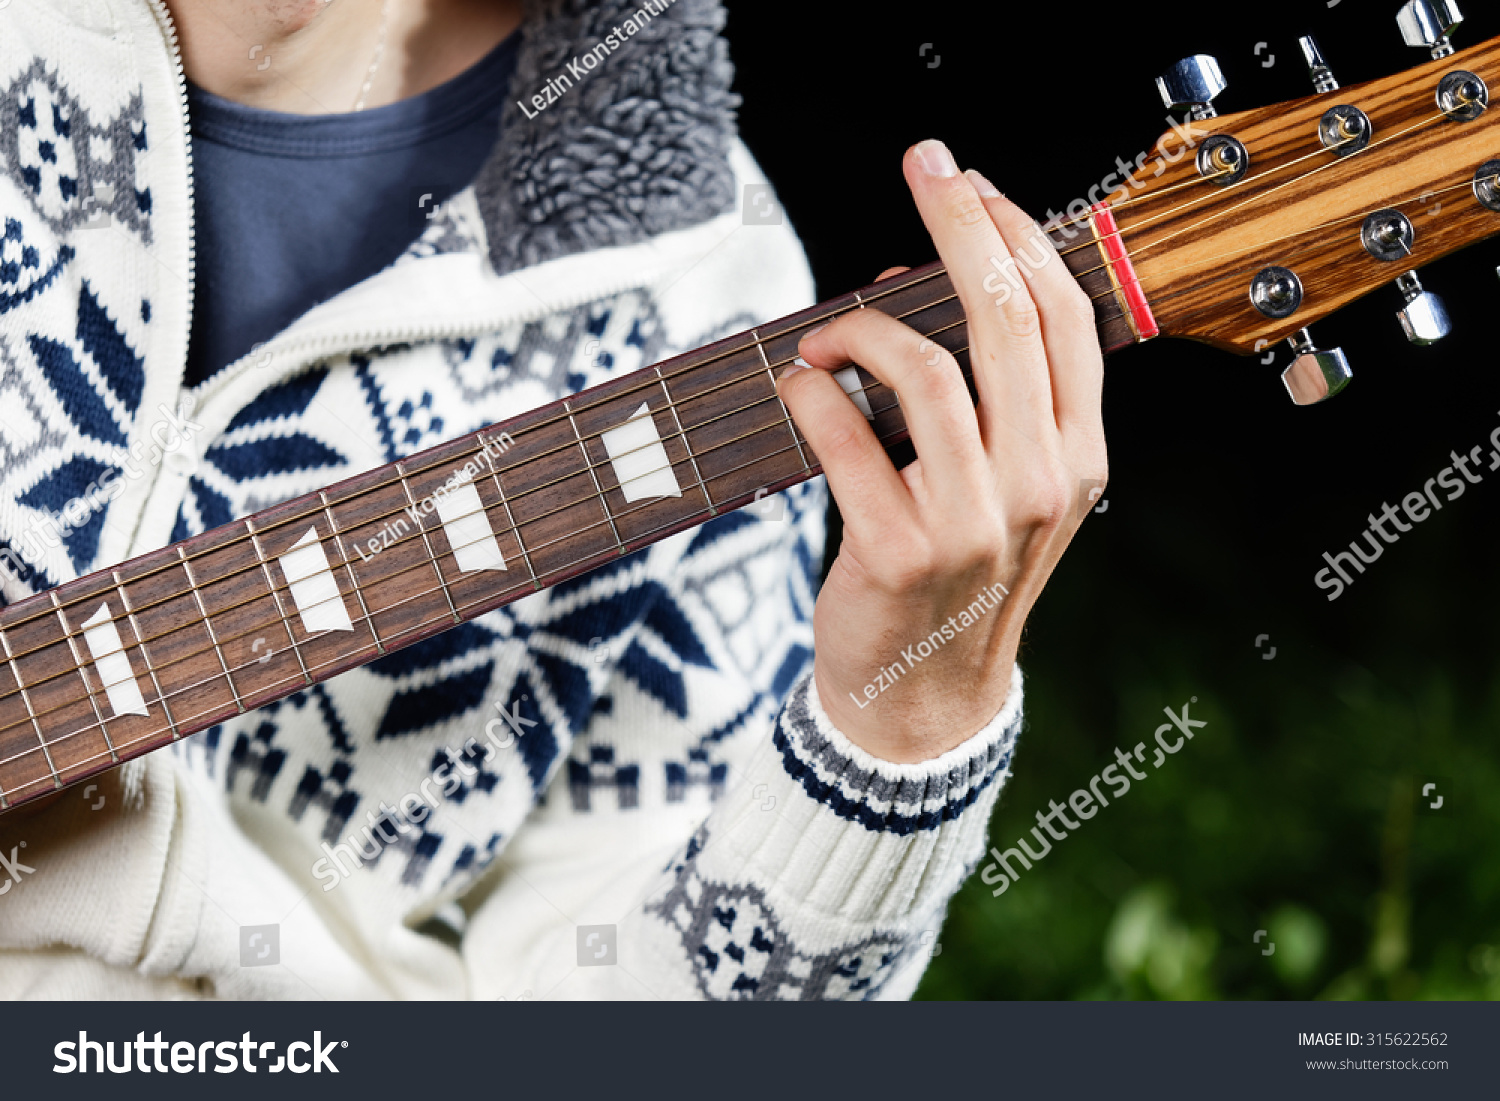 Fm Minor Guitar Chord Stock Photo Edit Now 315622562 Shutterstock